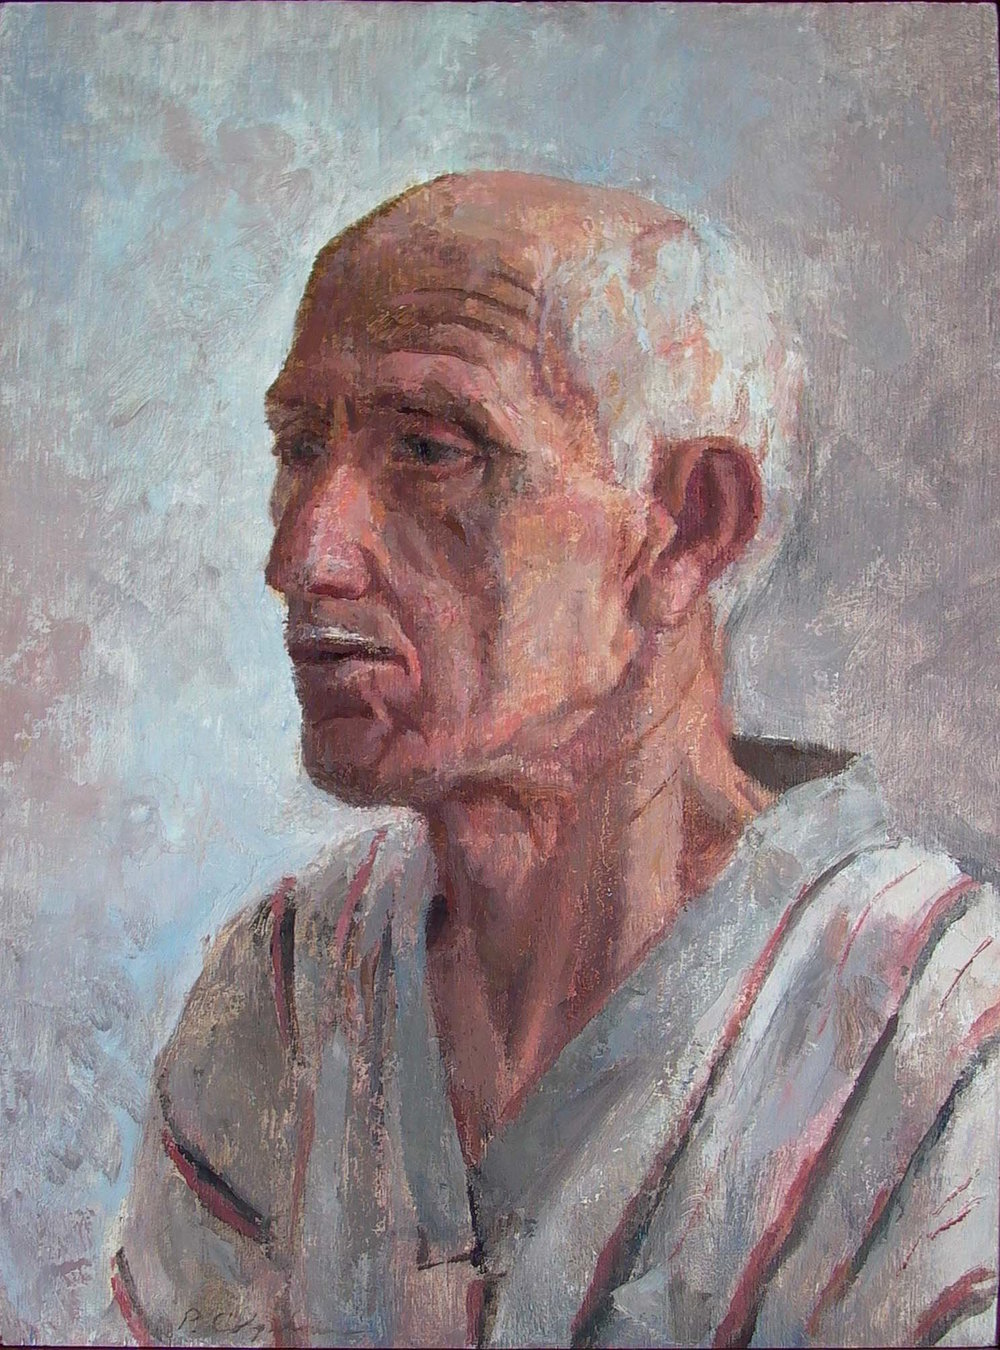 Portrait of a Man, 18 x 12 inches, oil on wood.